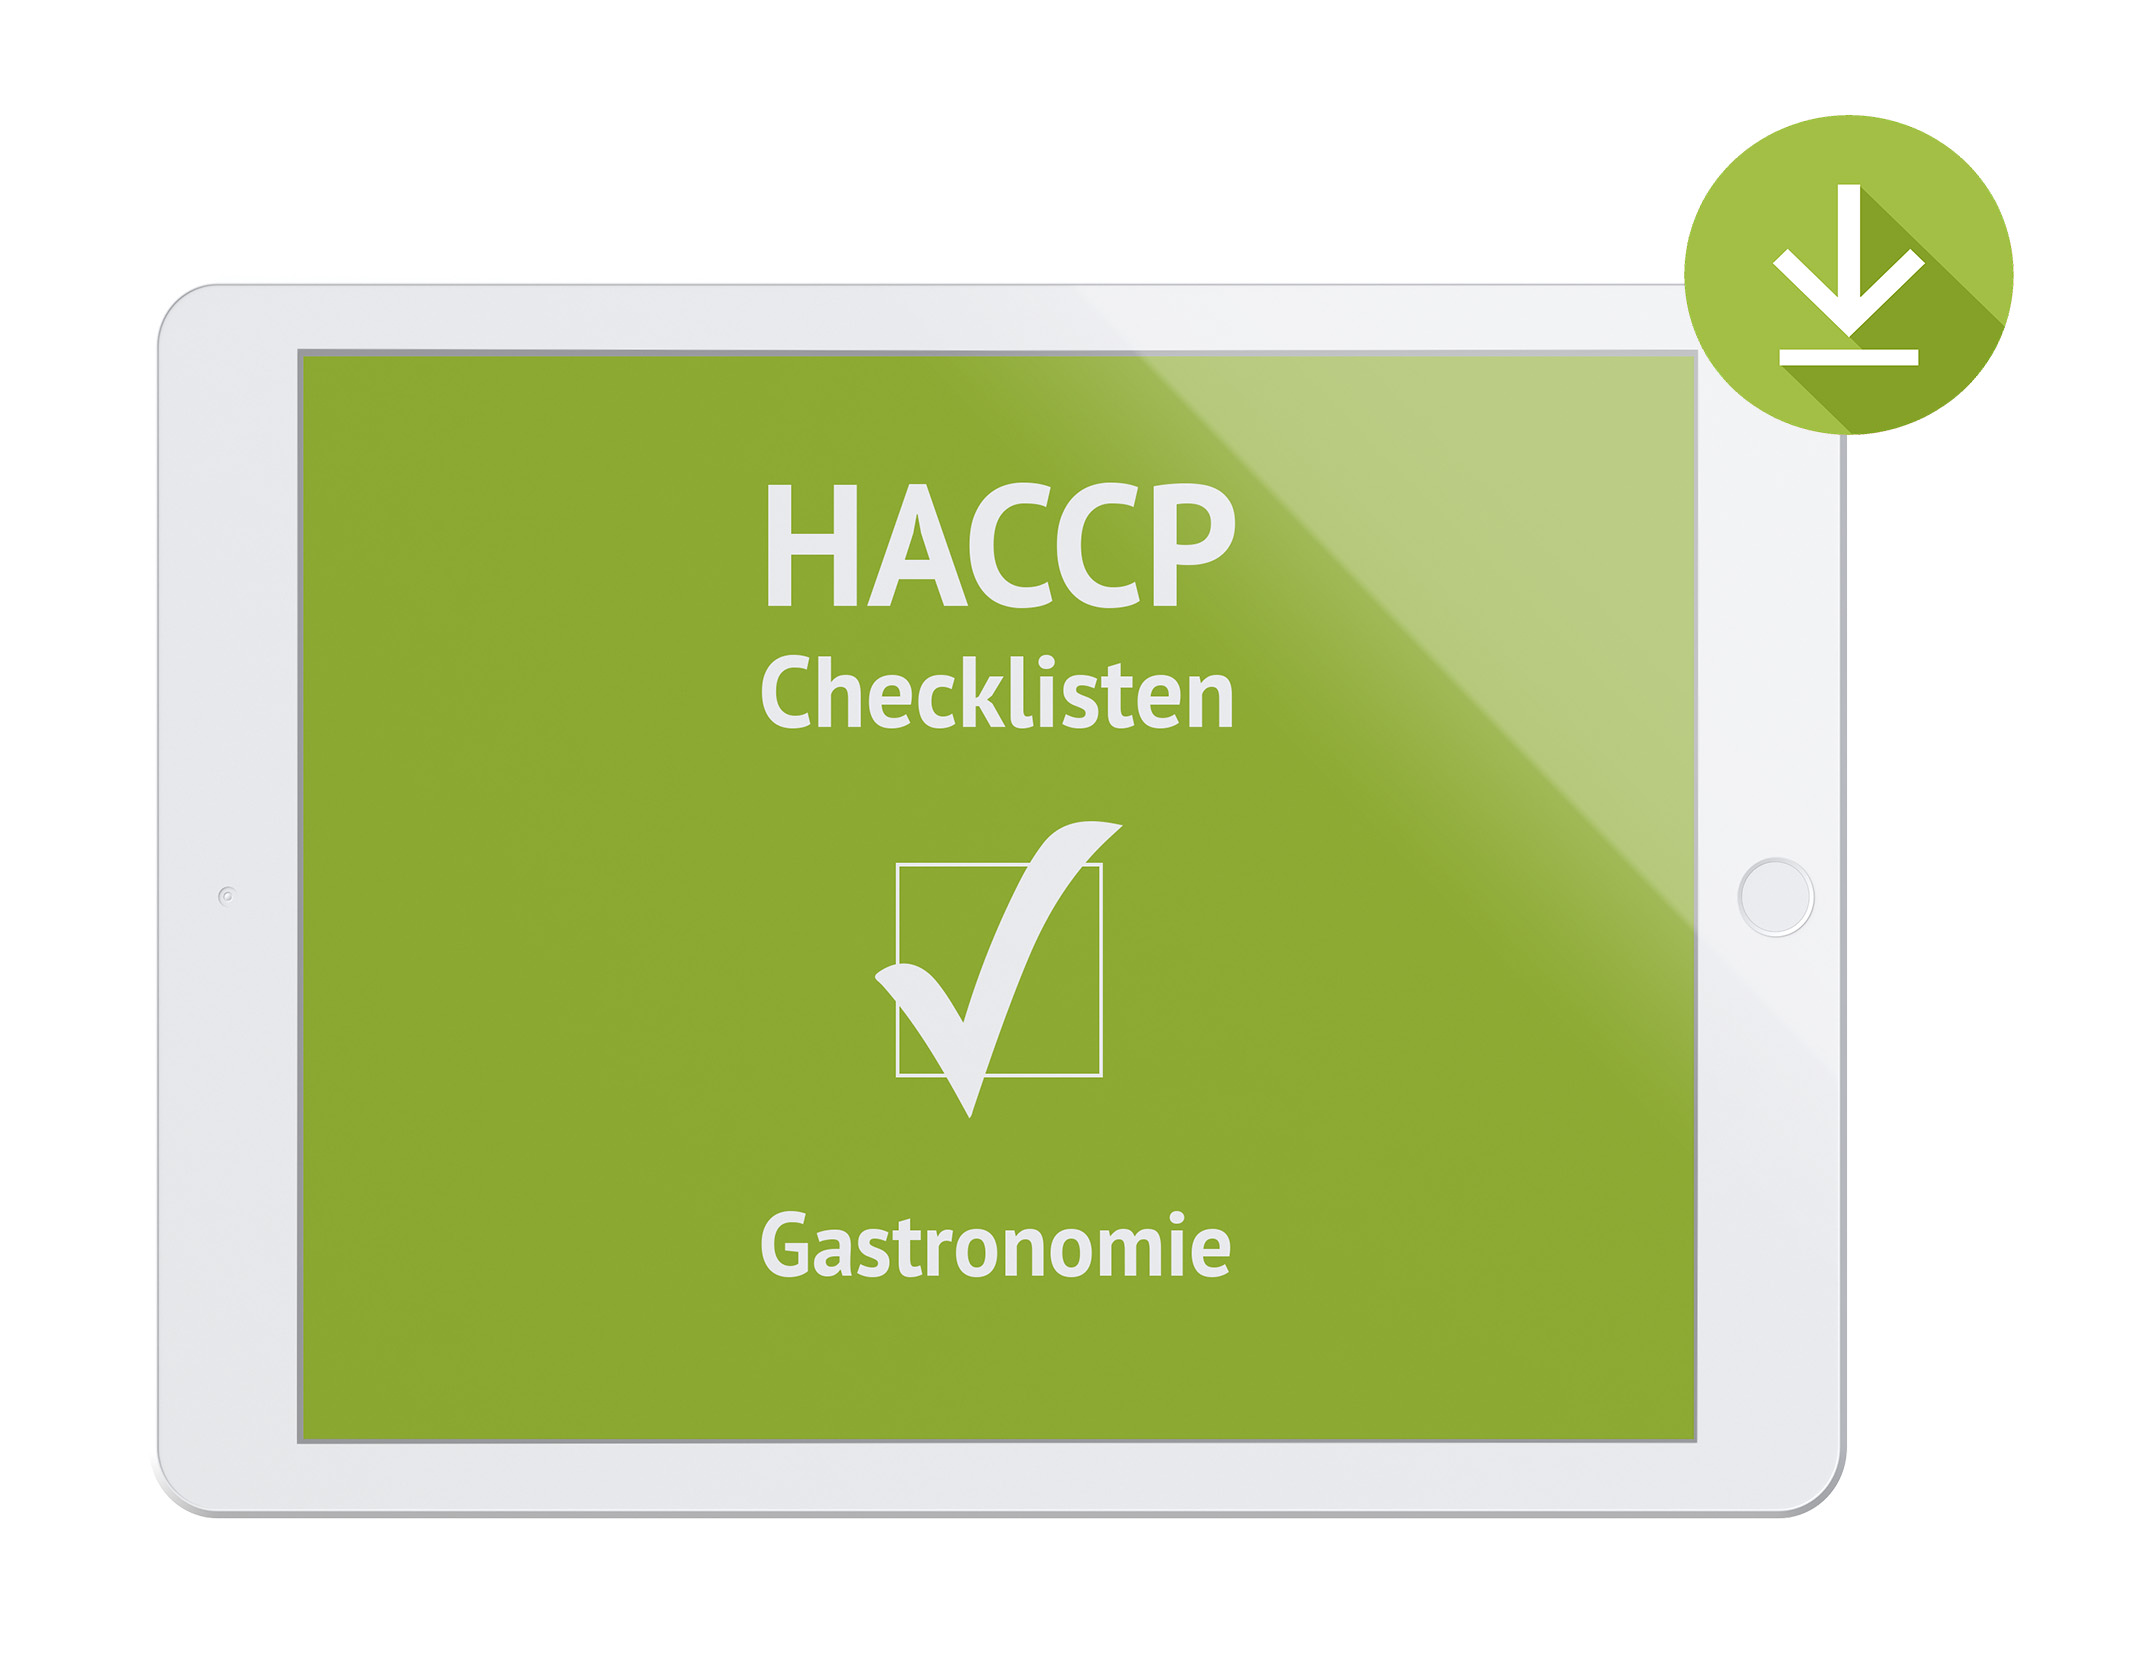 HACCP-Checklisten als Pdf- & Word-Dateien – Zum Download